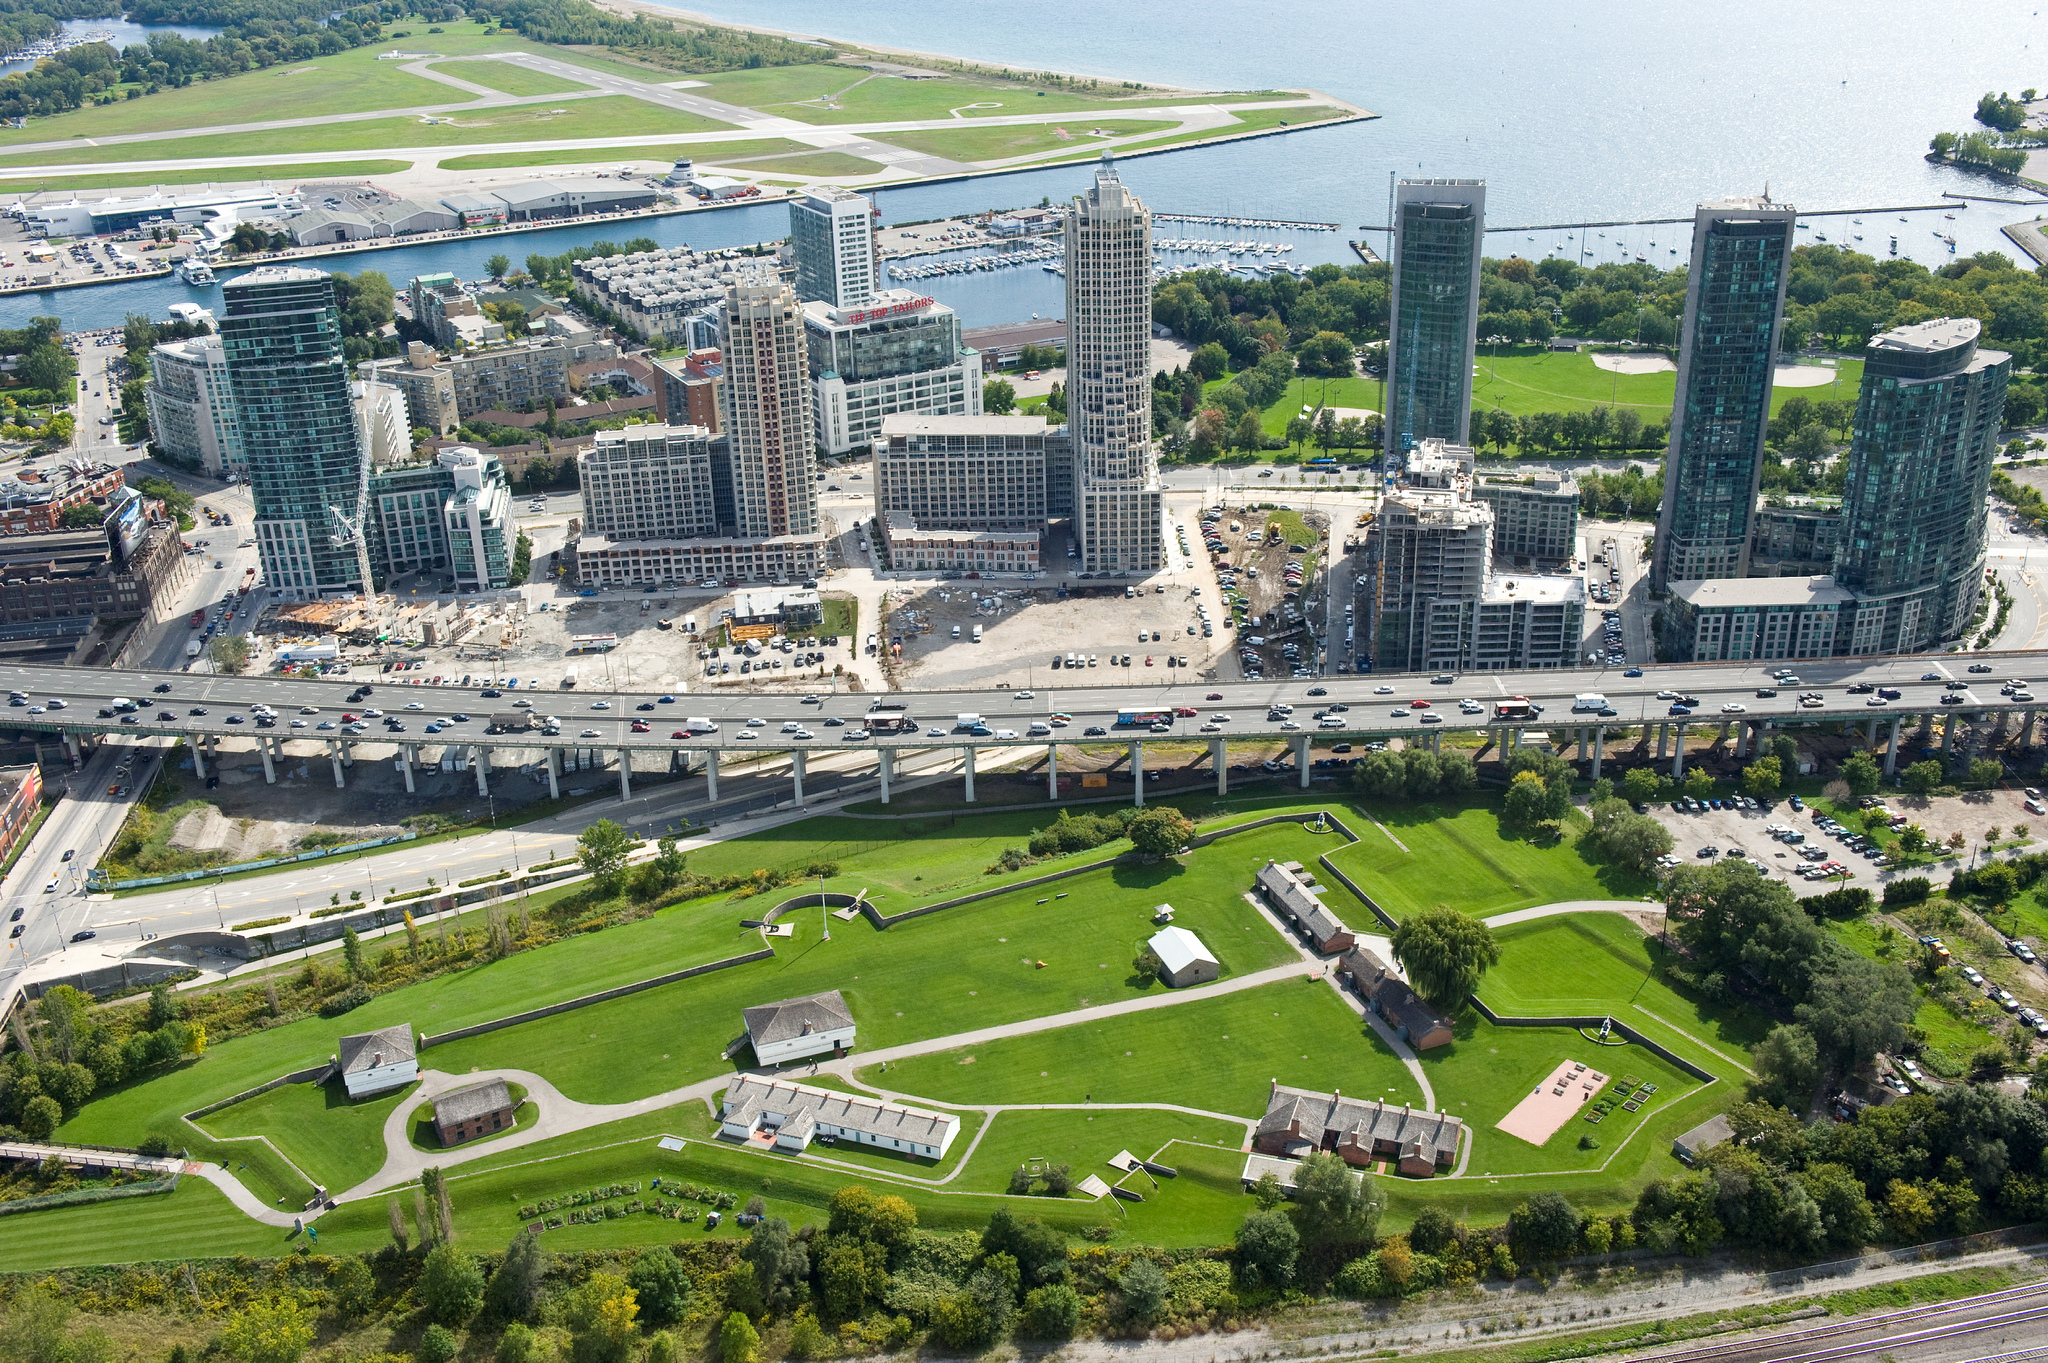 Aerial view of Fort York. We can see the Gardiner Expressway, Billy Bishop Airport, Toronto Waterfront & abundant green-spaces.